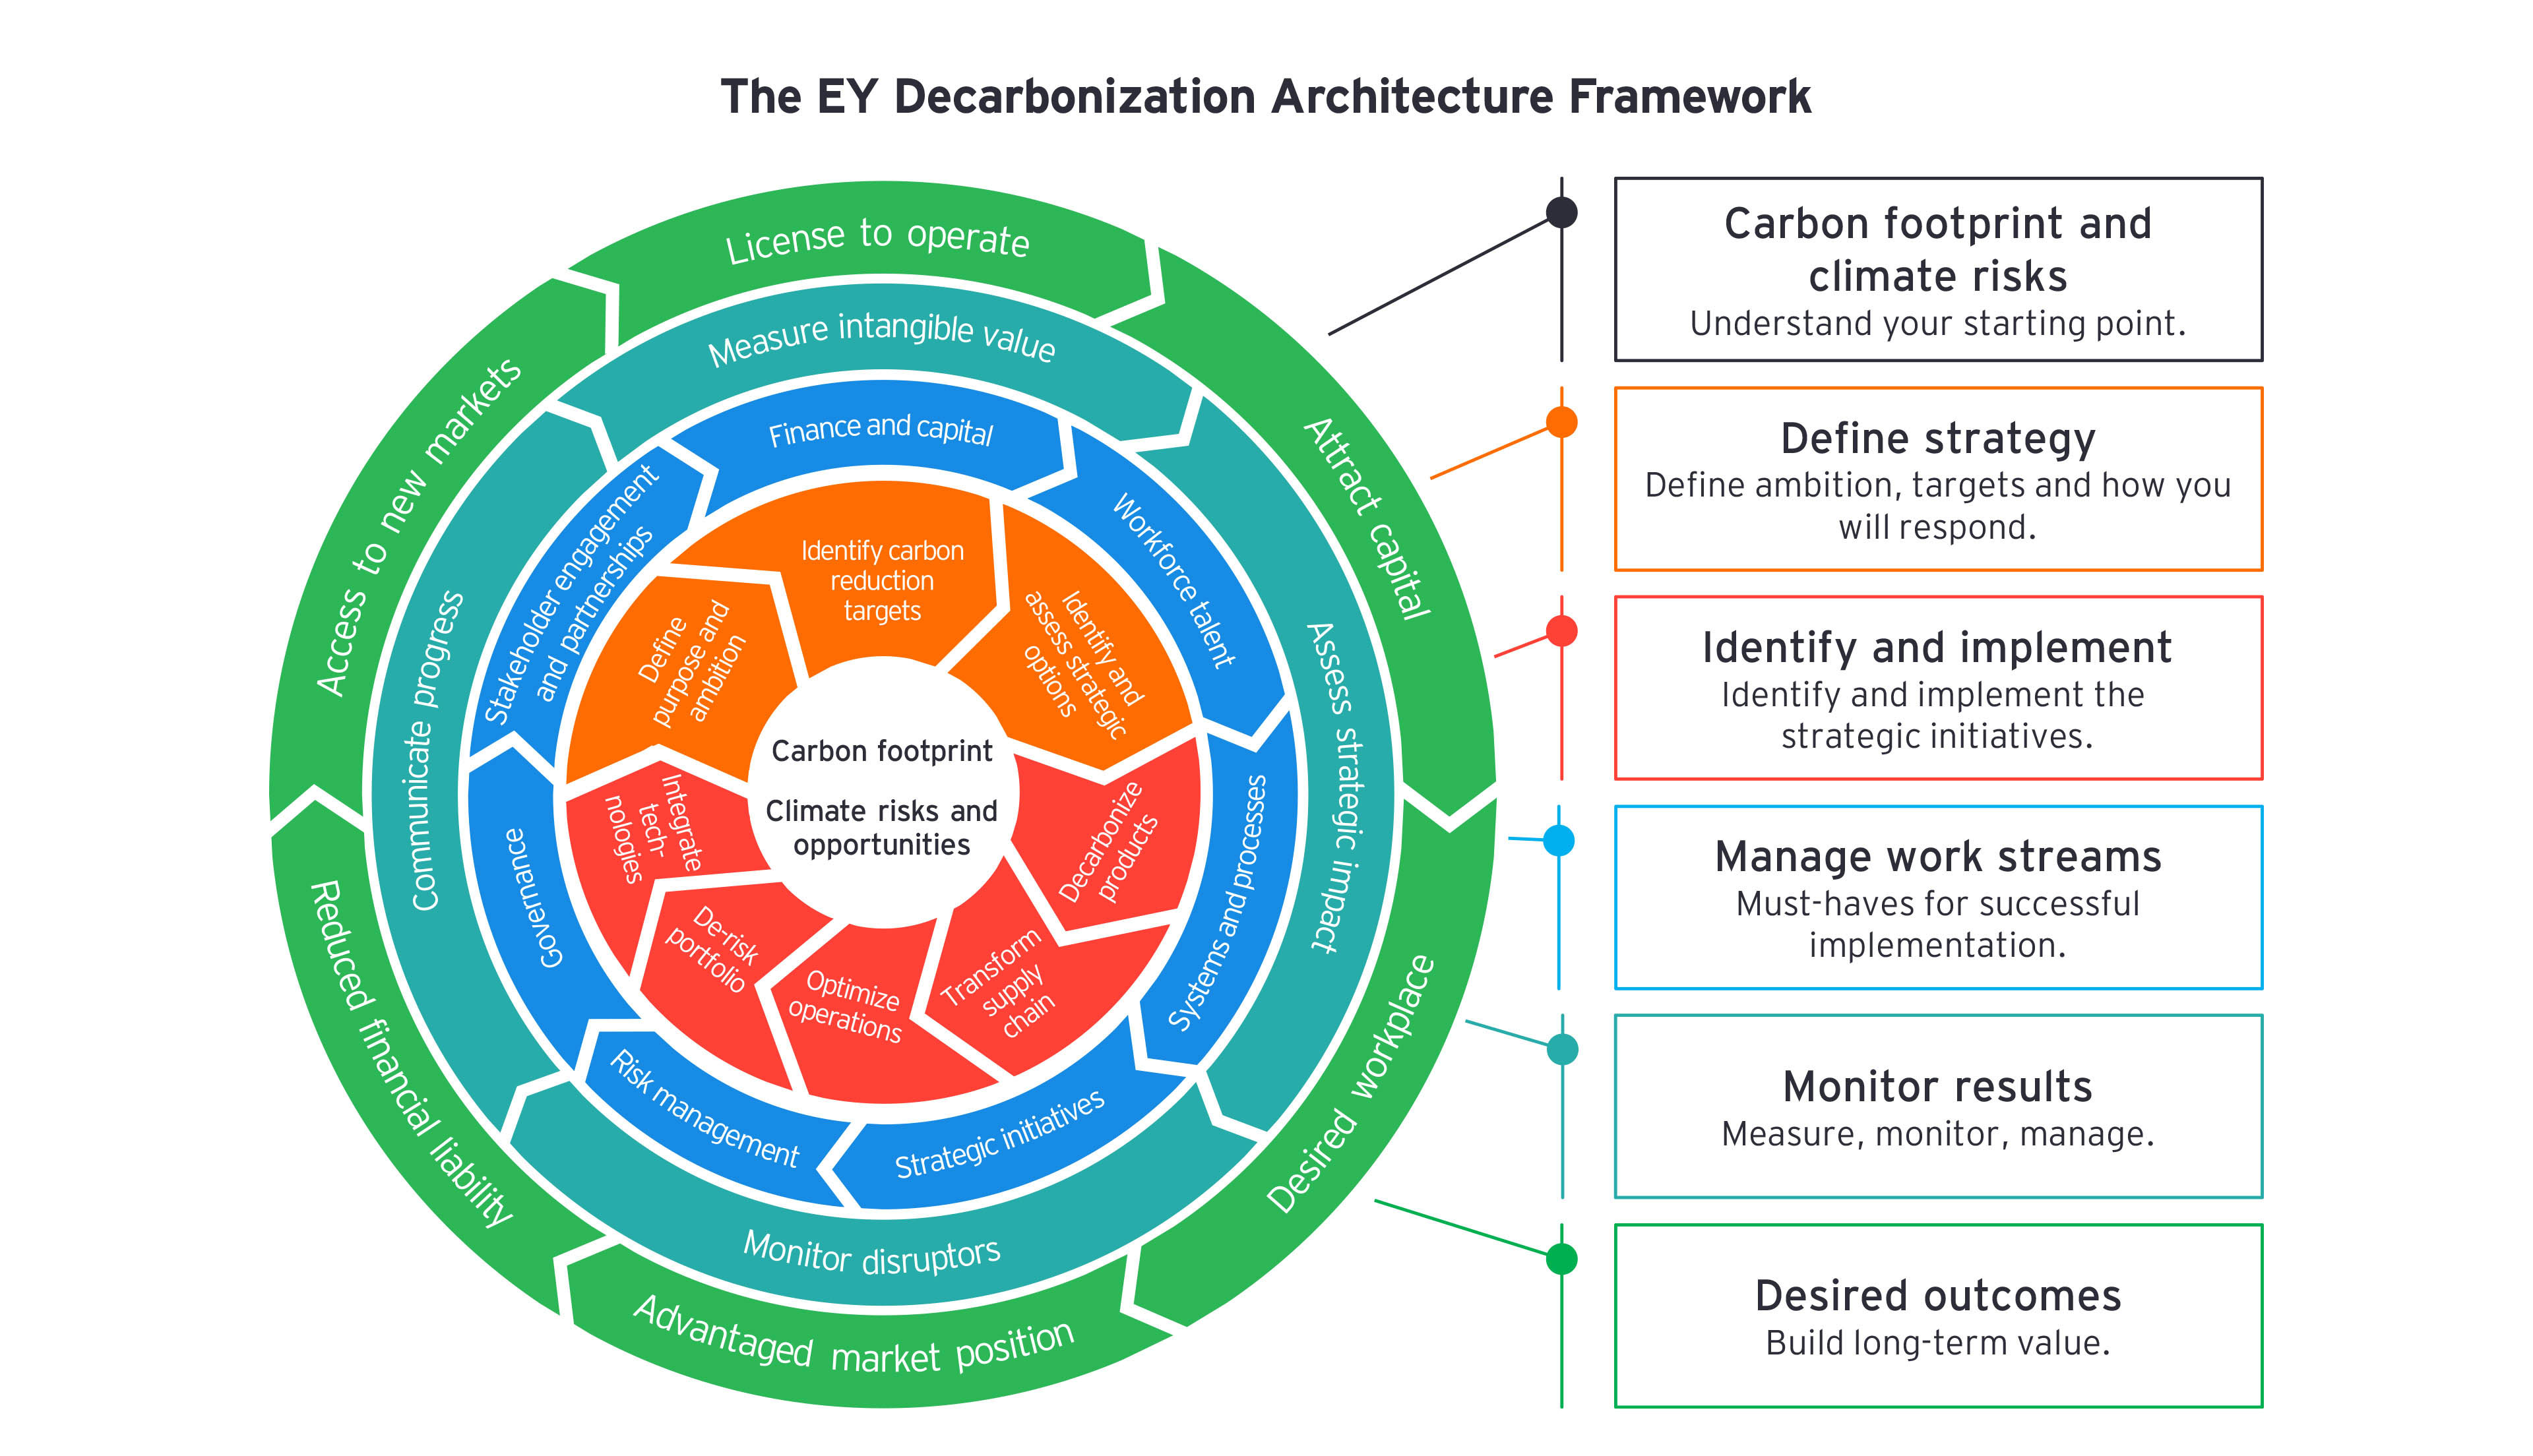 EY - Chart of the EY Decarbonization Architecture Framework